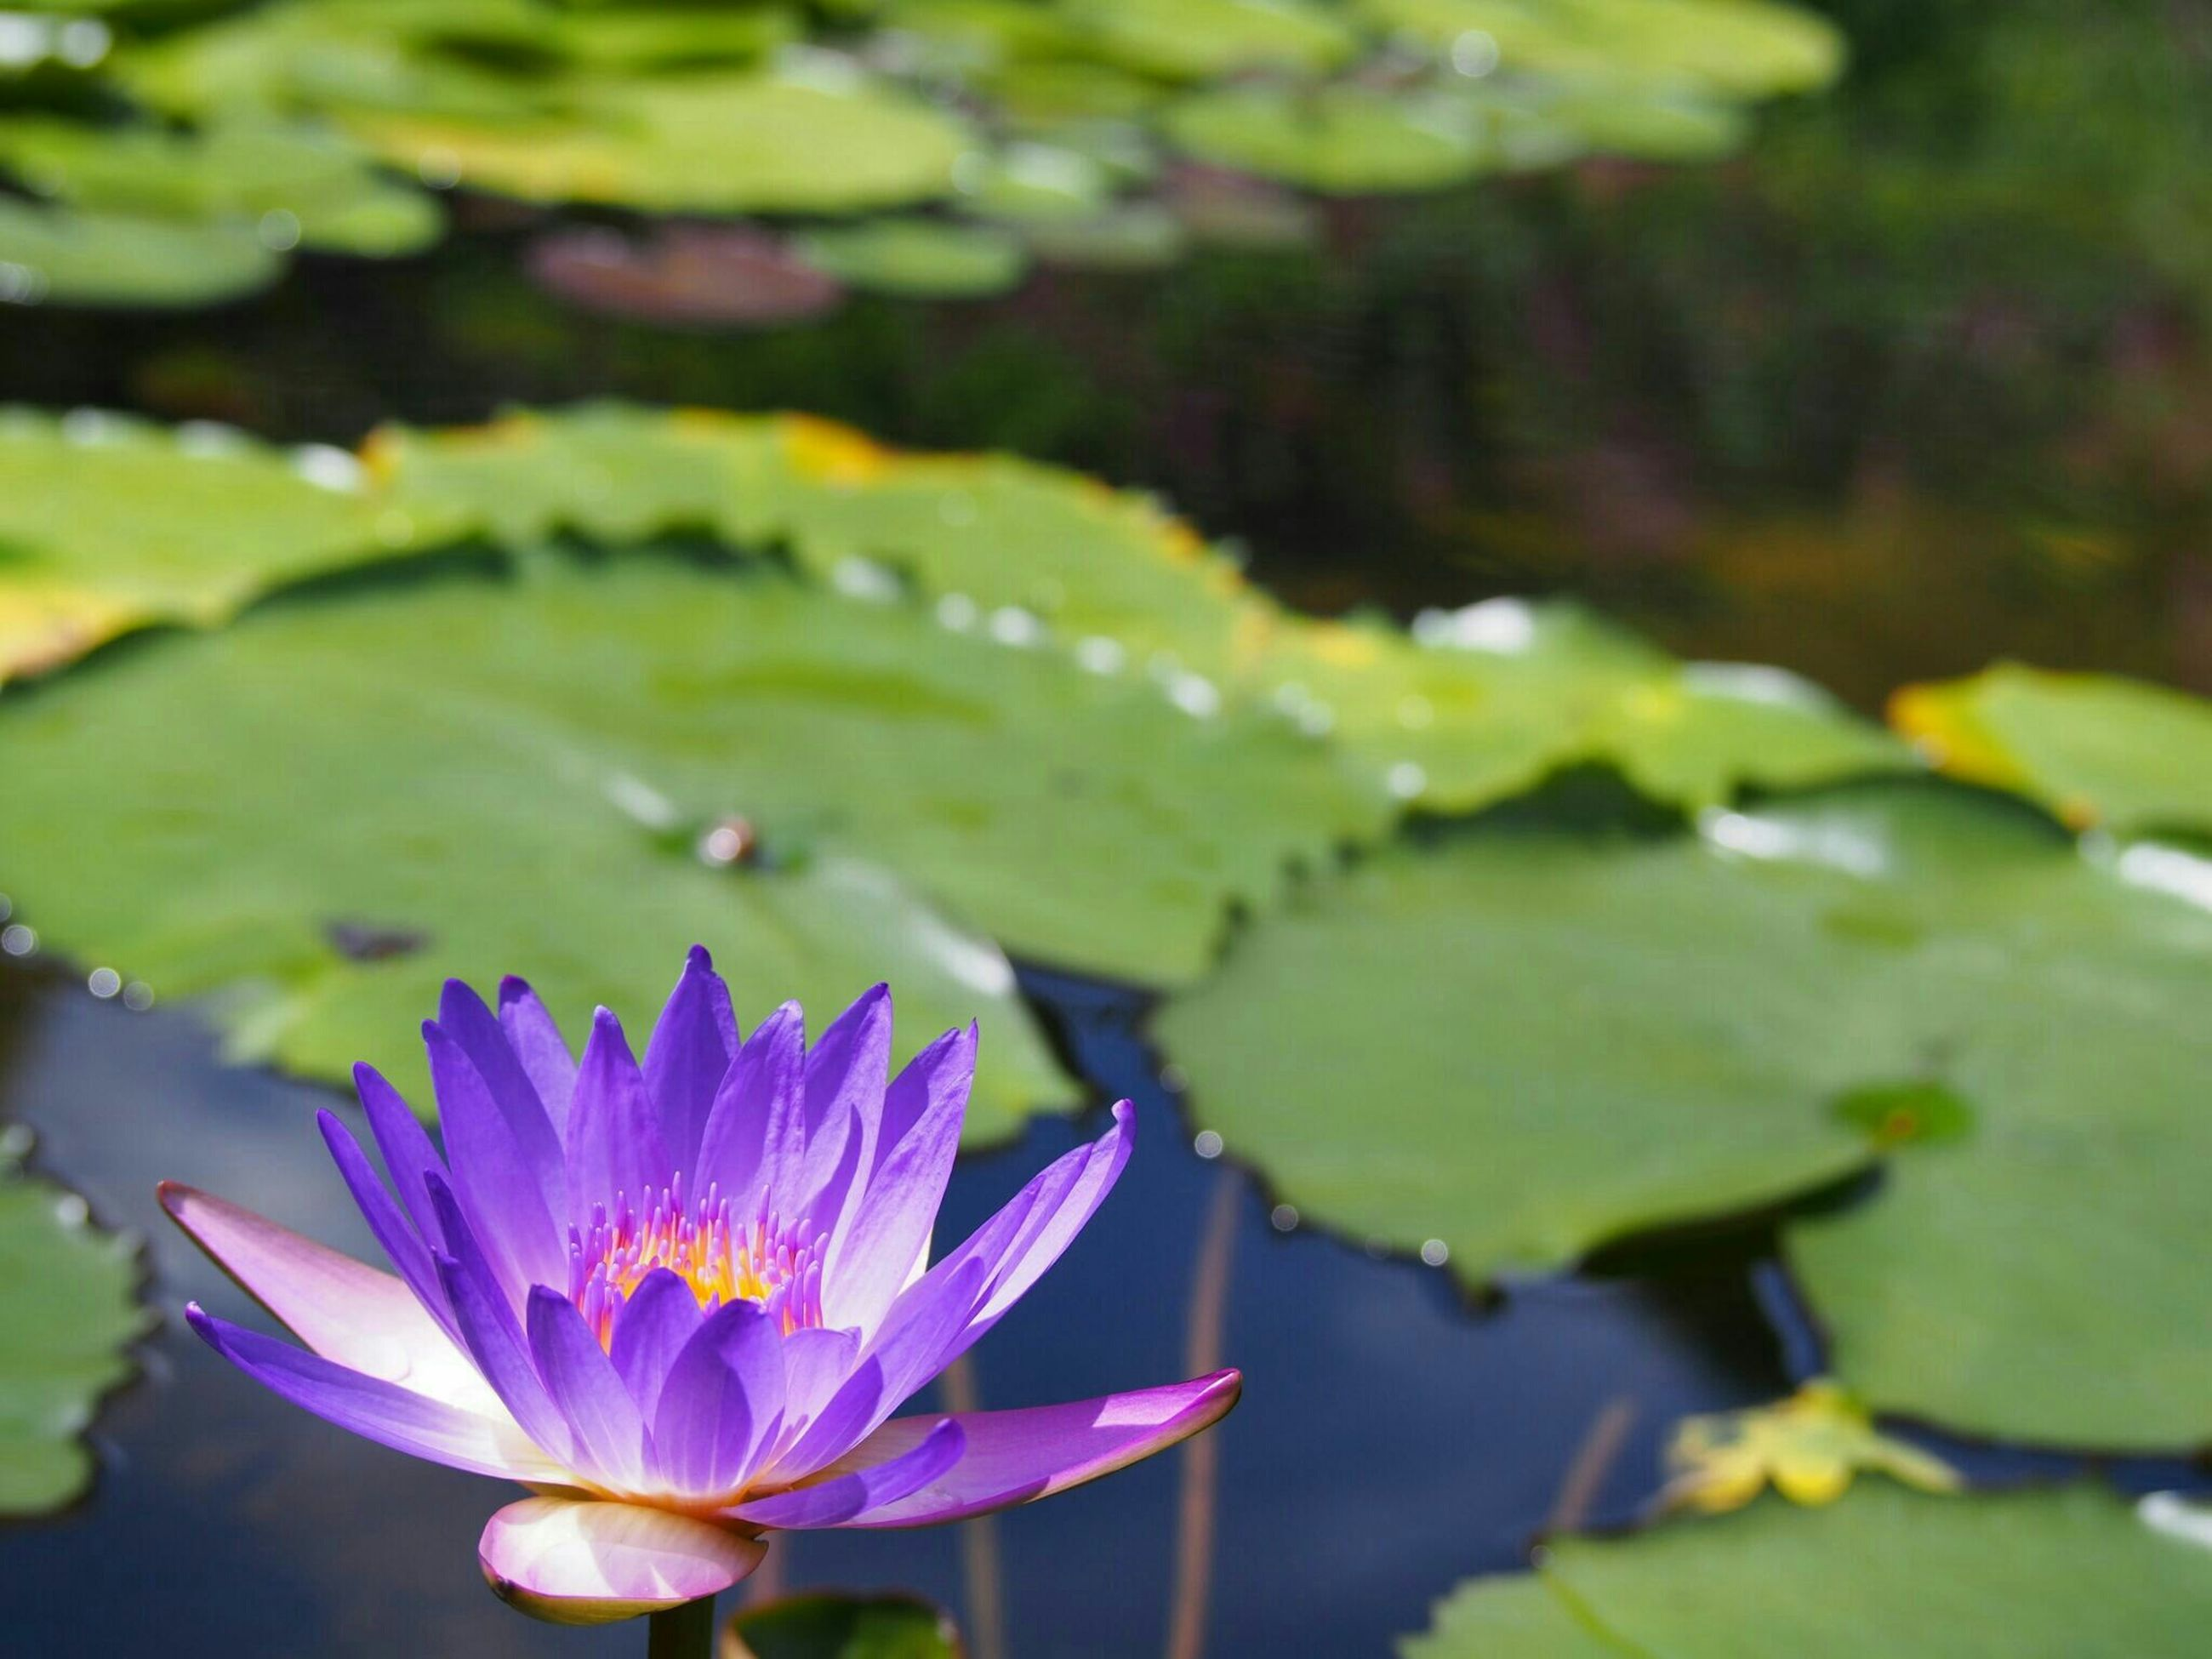 flower, petal, freshness, water lily, fragility, water, growth, pond, leaf, flower head, beauty in nature, plant, purple, lotus water lily, close-up, nature, blooming, floating on water, focus on foreground, lake